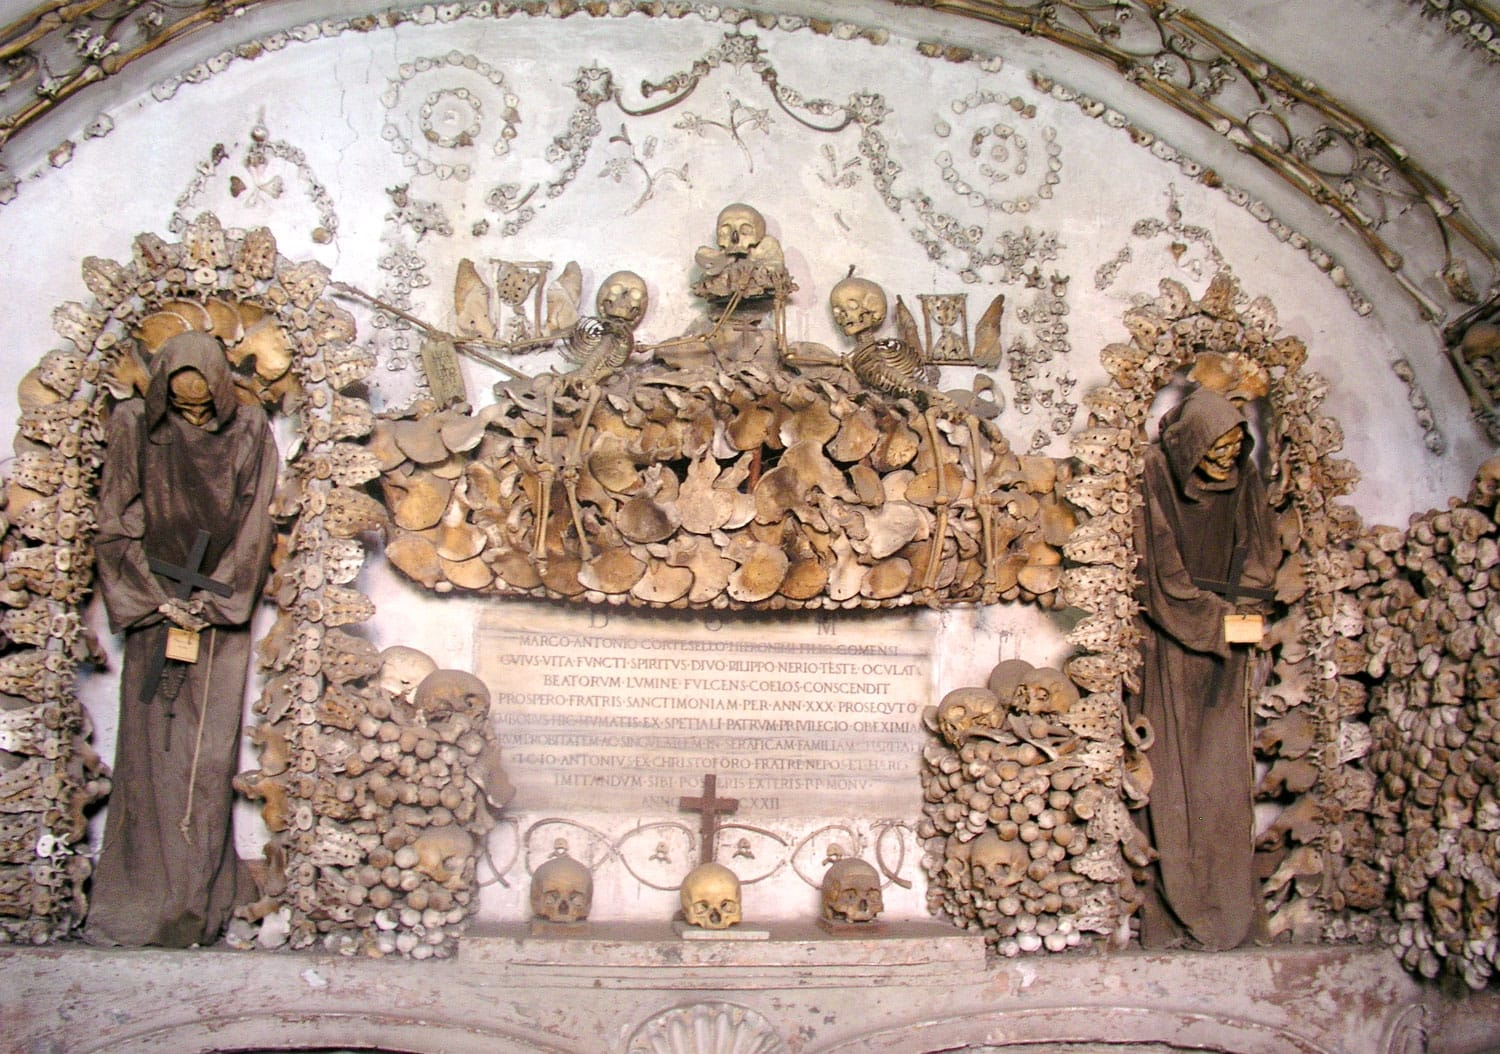 Capuchin Crypts and Catacombs in Rome Italy